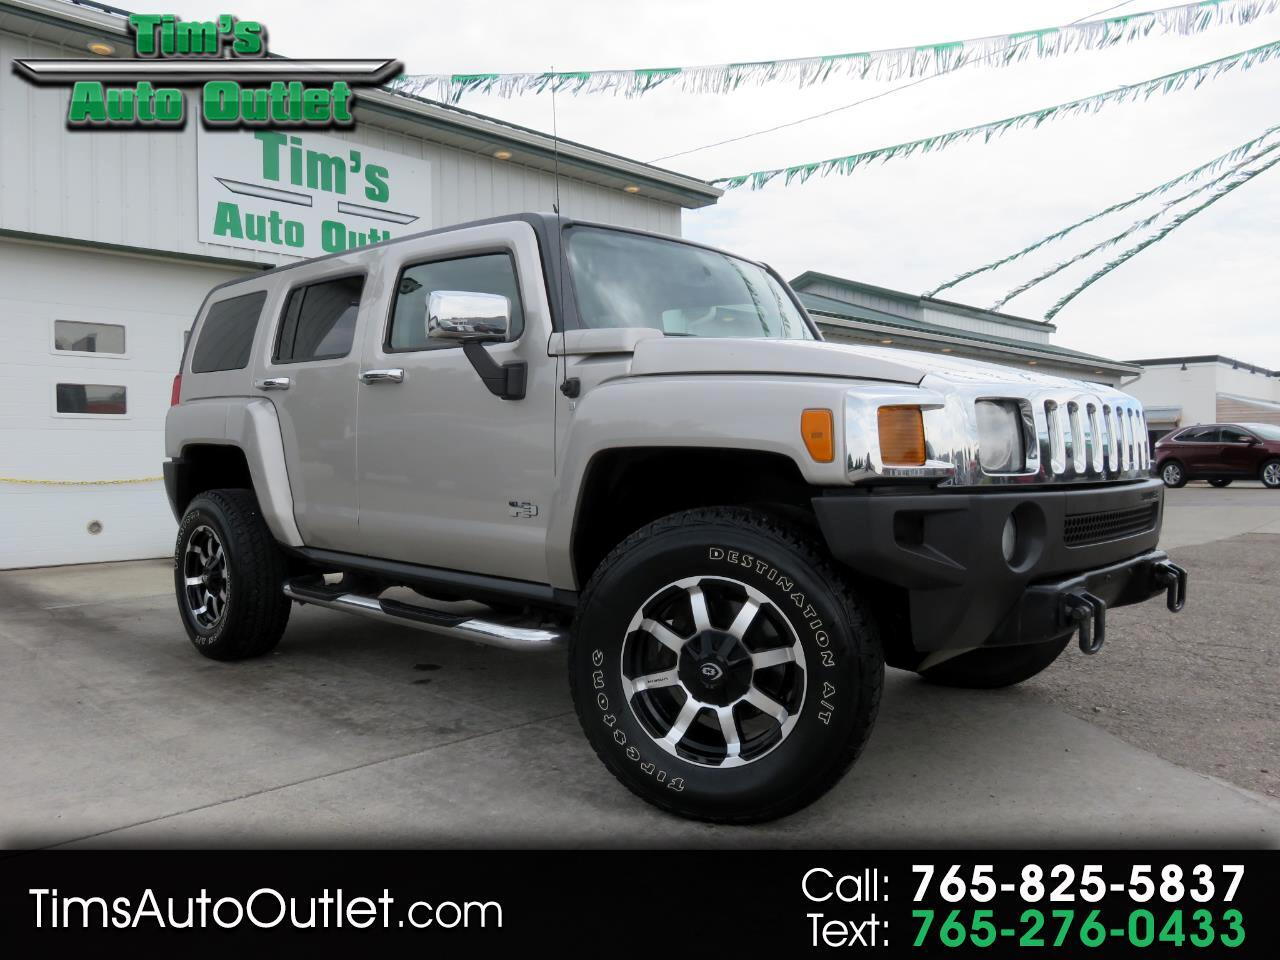 2007 HUMMER H3 4WD 4dr SUV Luxury